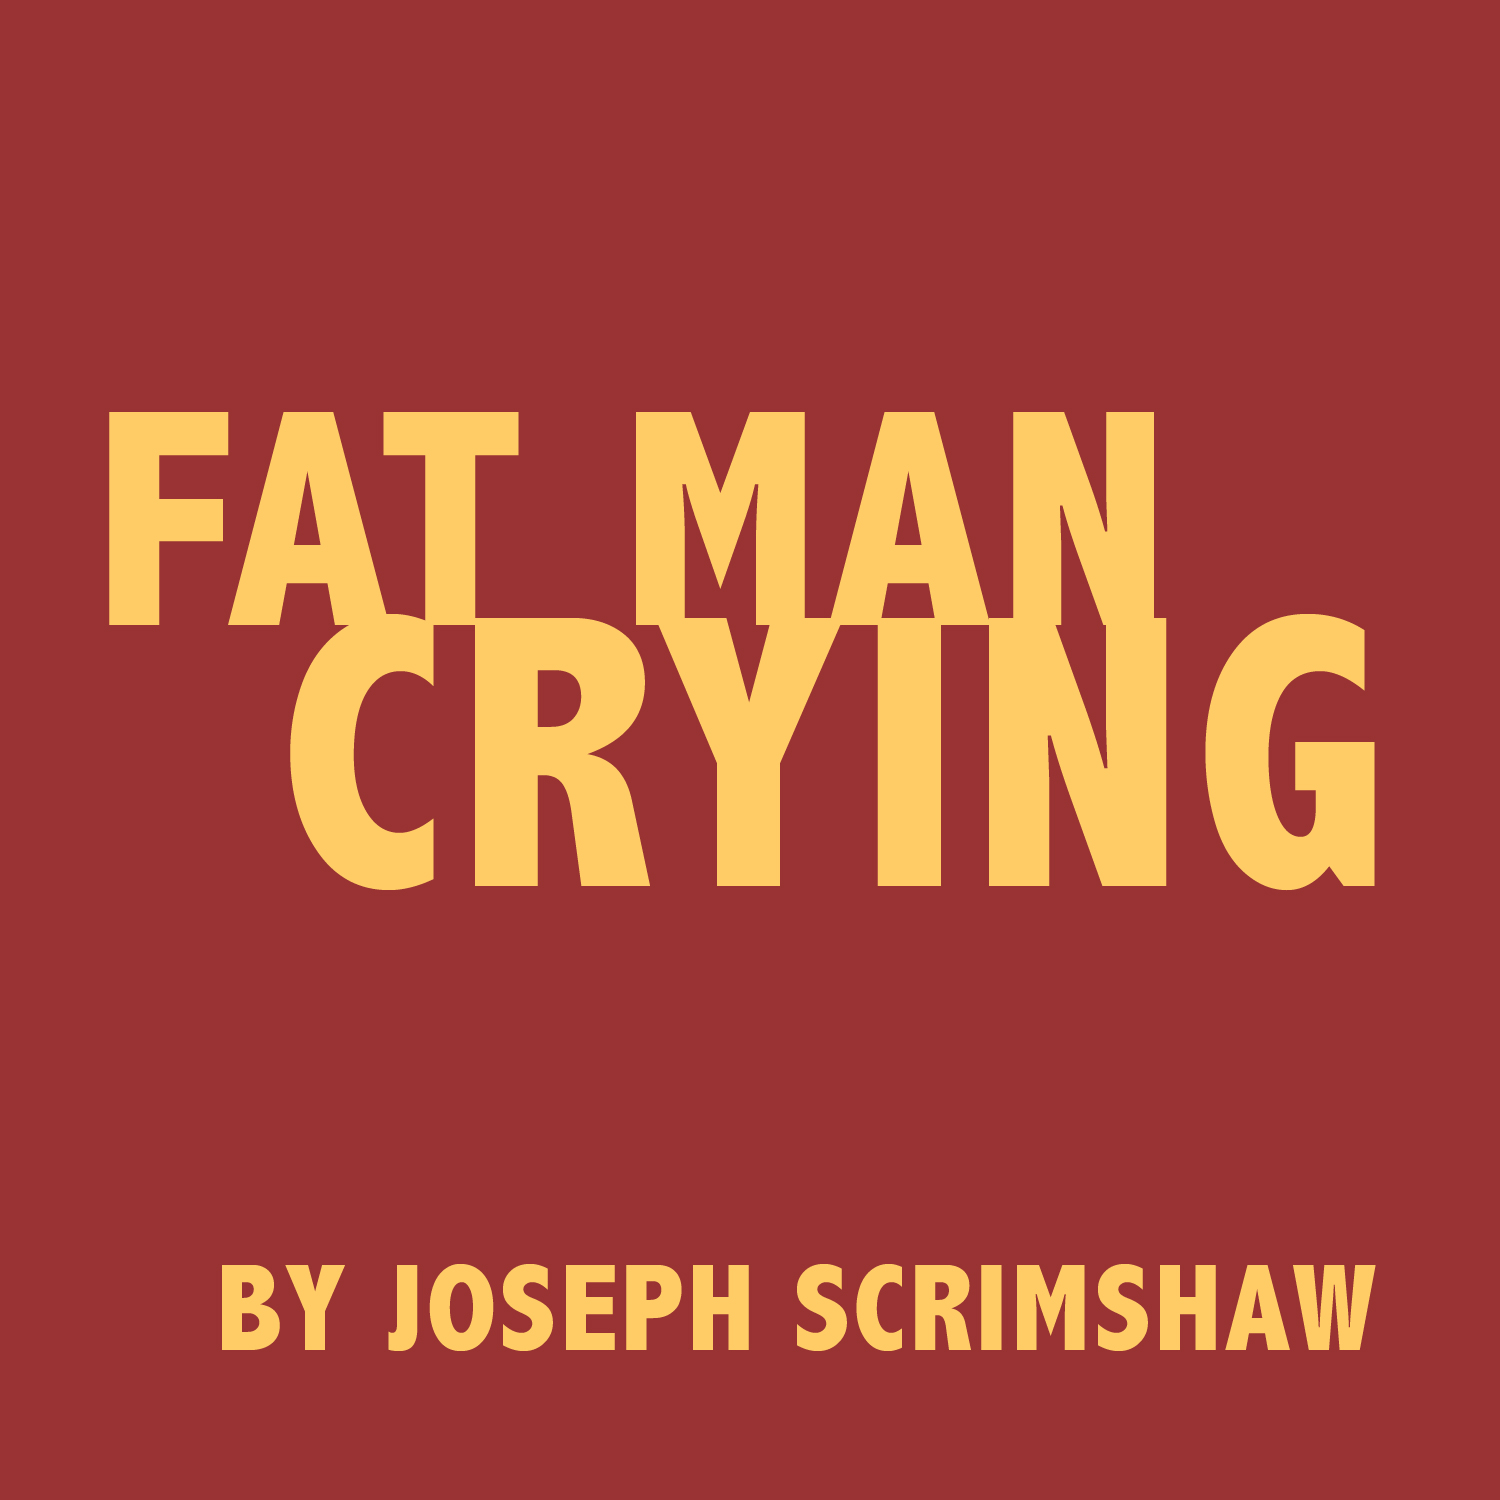 Fat Man Crying PDF